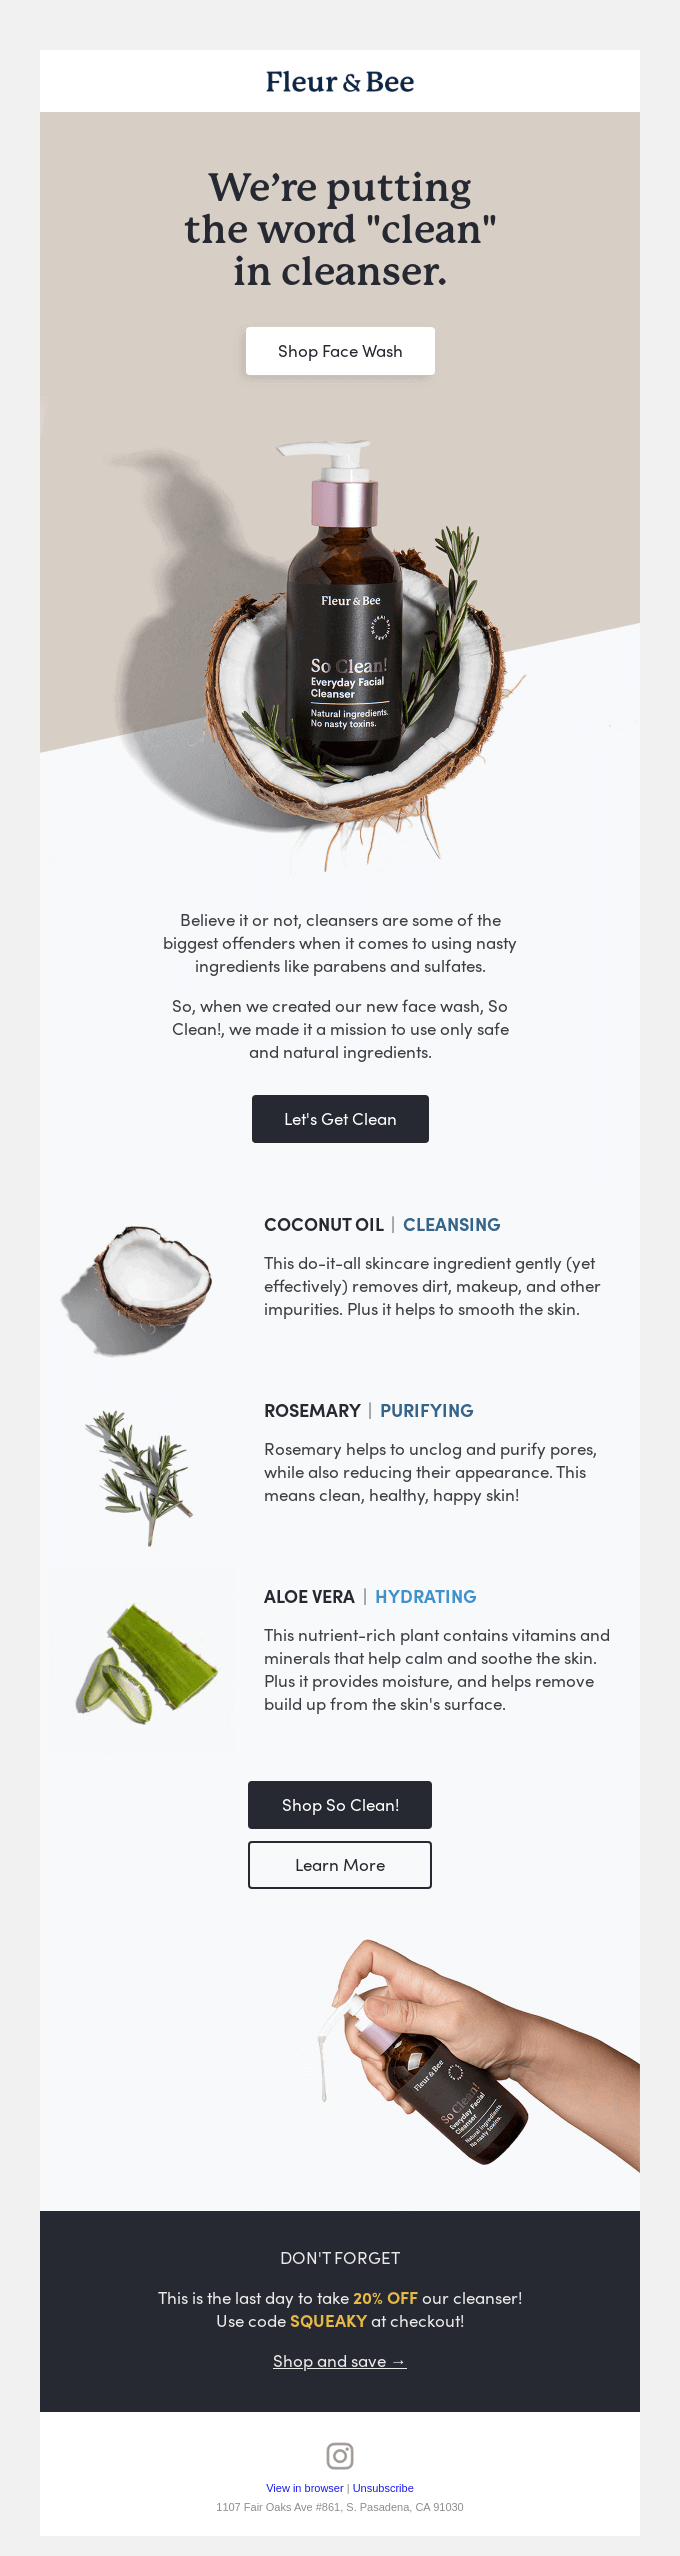 An email from Fleur & Bee calling out its clean products.